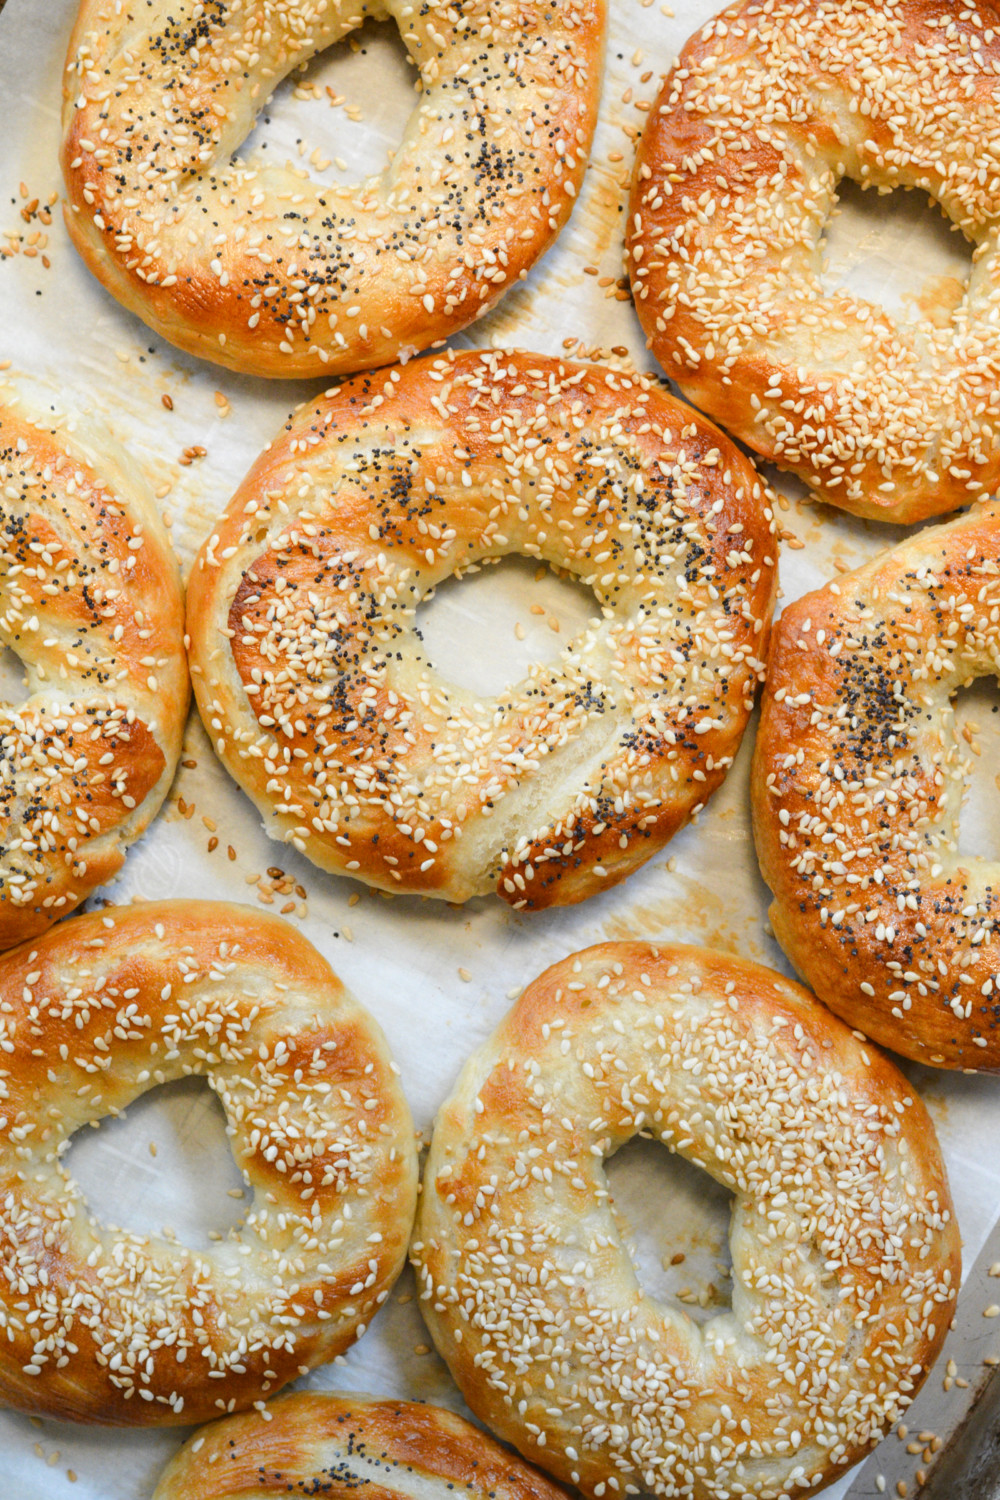 Discussion on this topic: Montreal-Style Bagels, montreal-style-bagels/